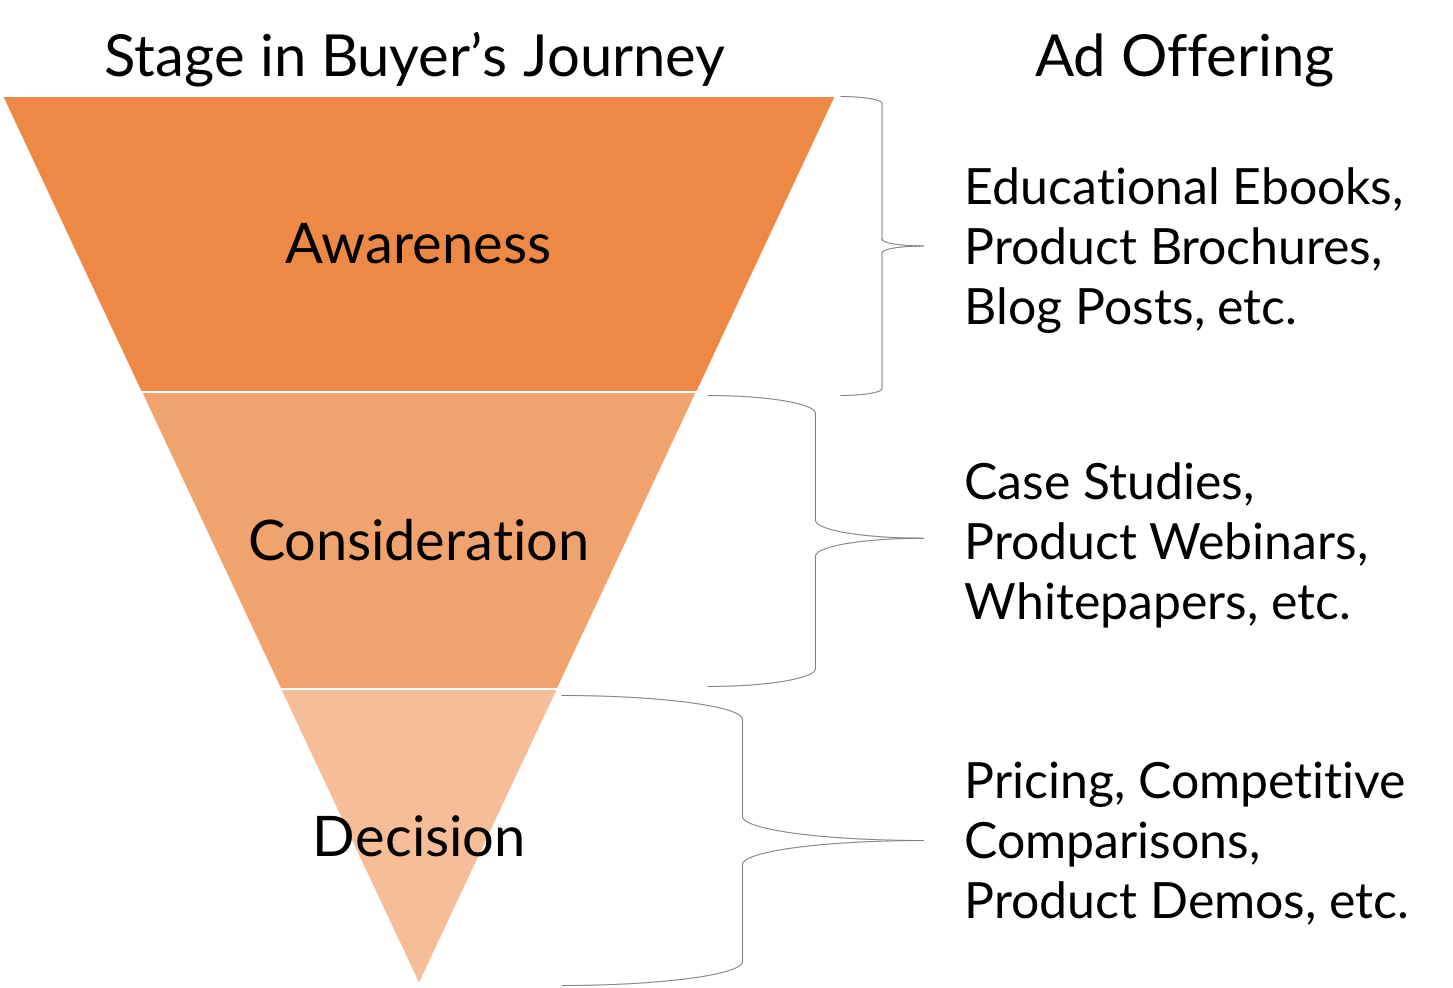 7 AdWords Campaign Types That Fill Your Sales Funnel